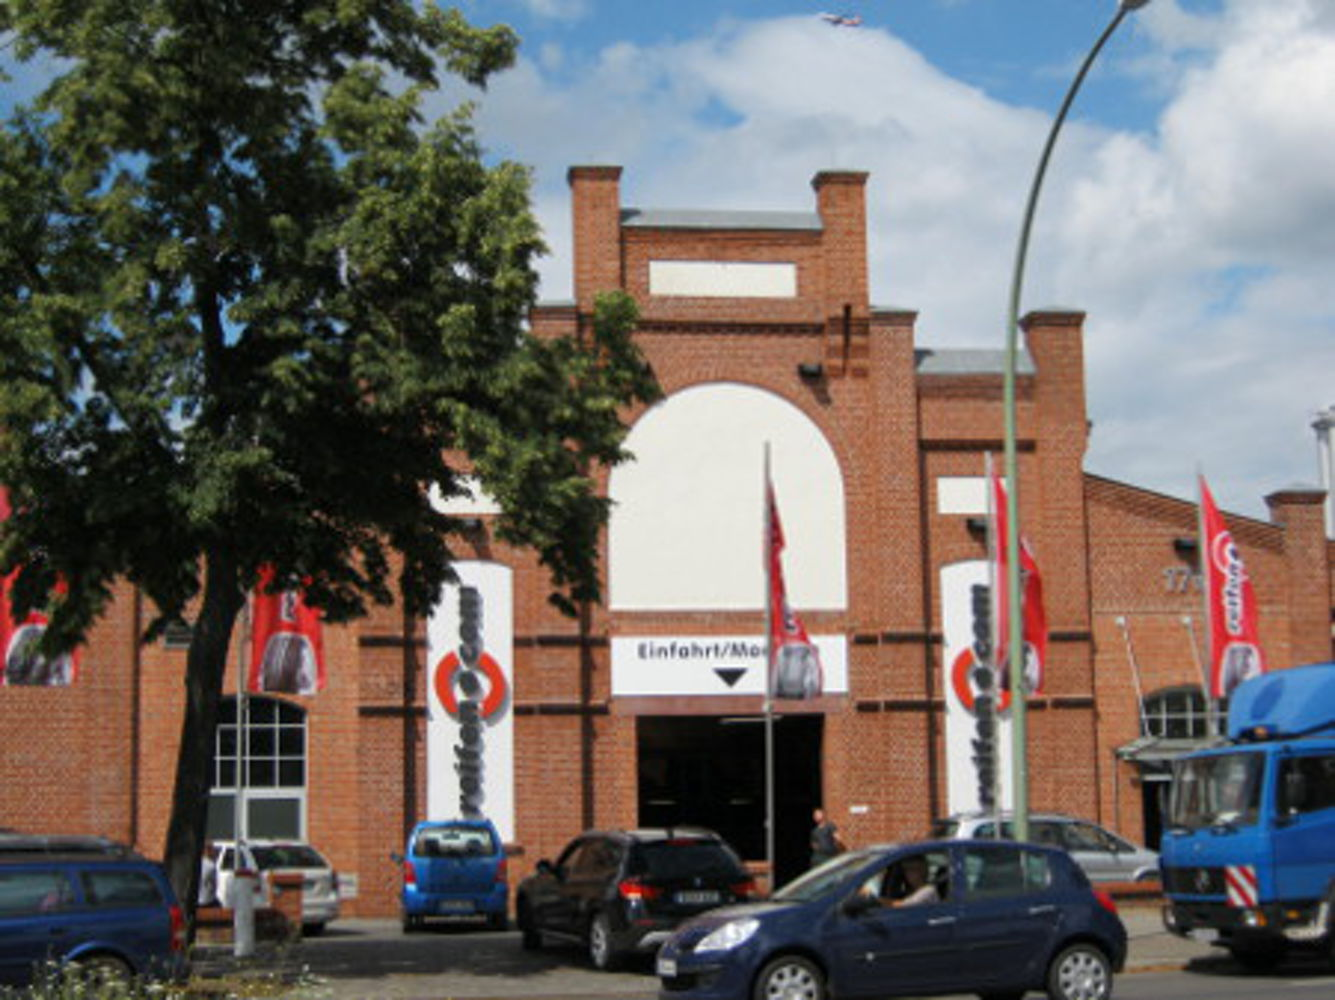 reifen.com-branch in Berlin Spandau